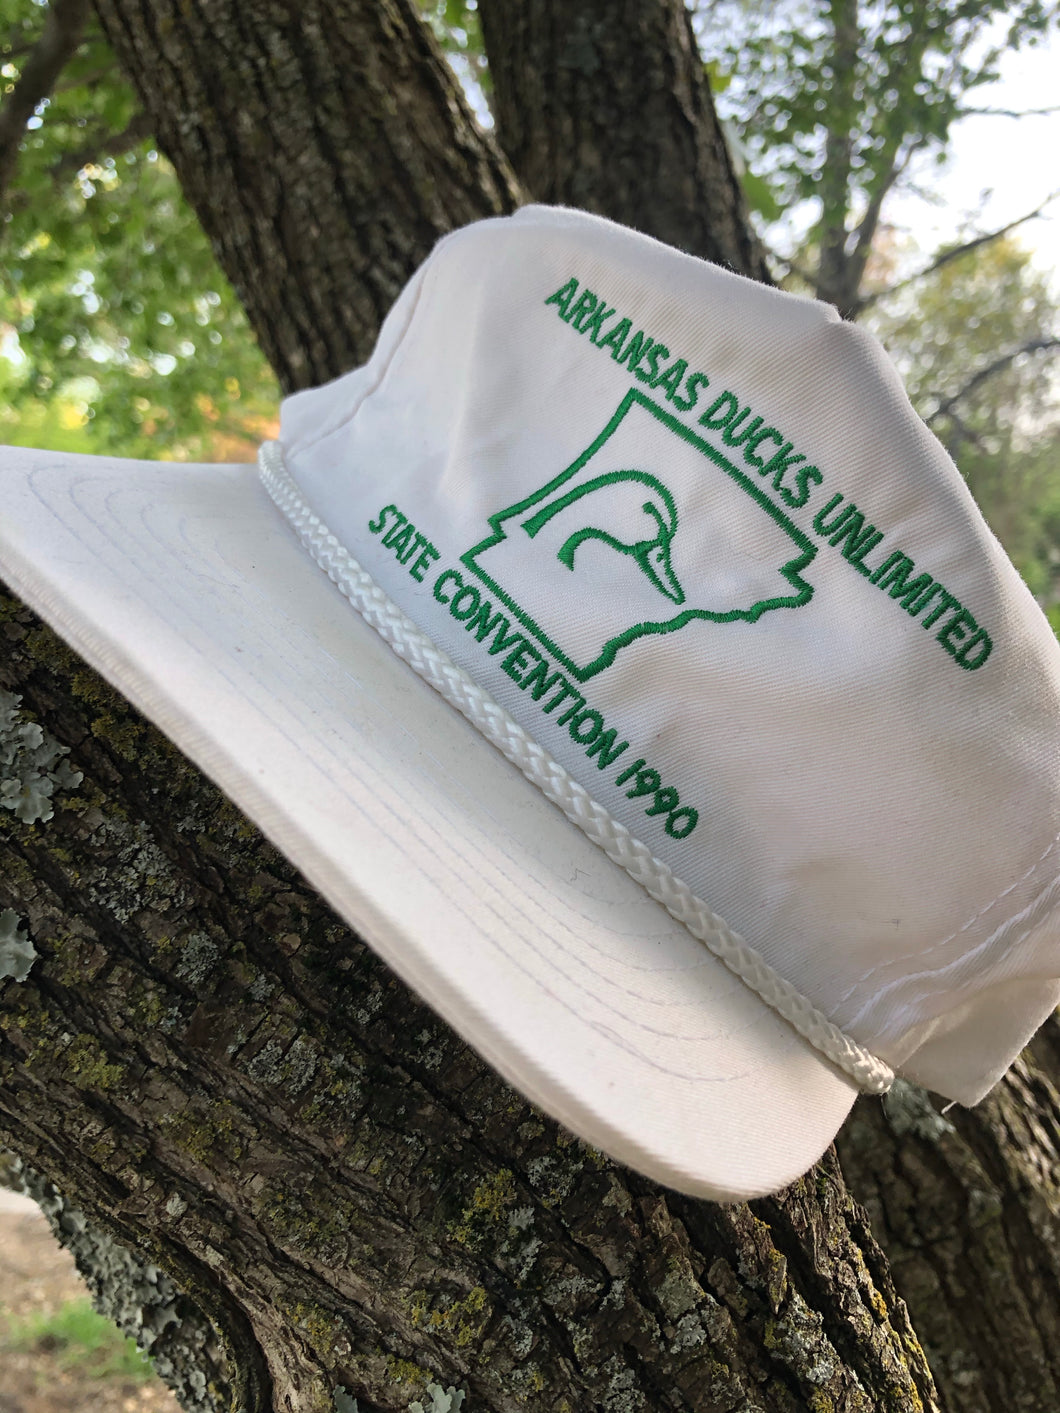 1990 Ducks Unlimited Arkansas Snapback